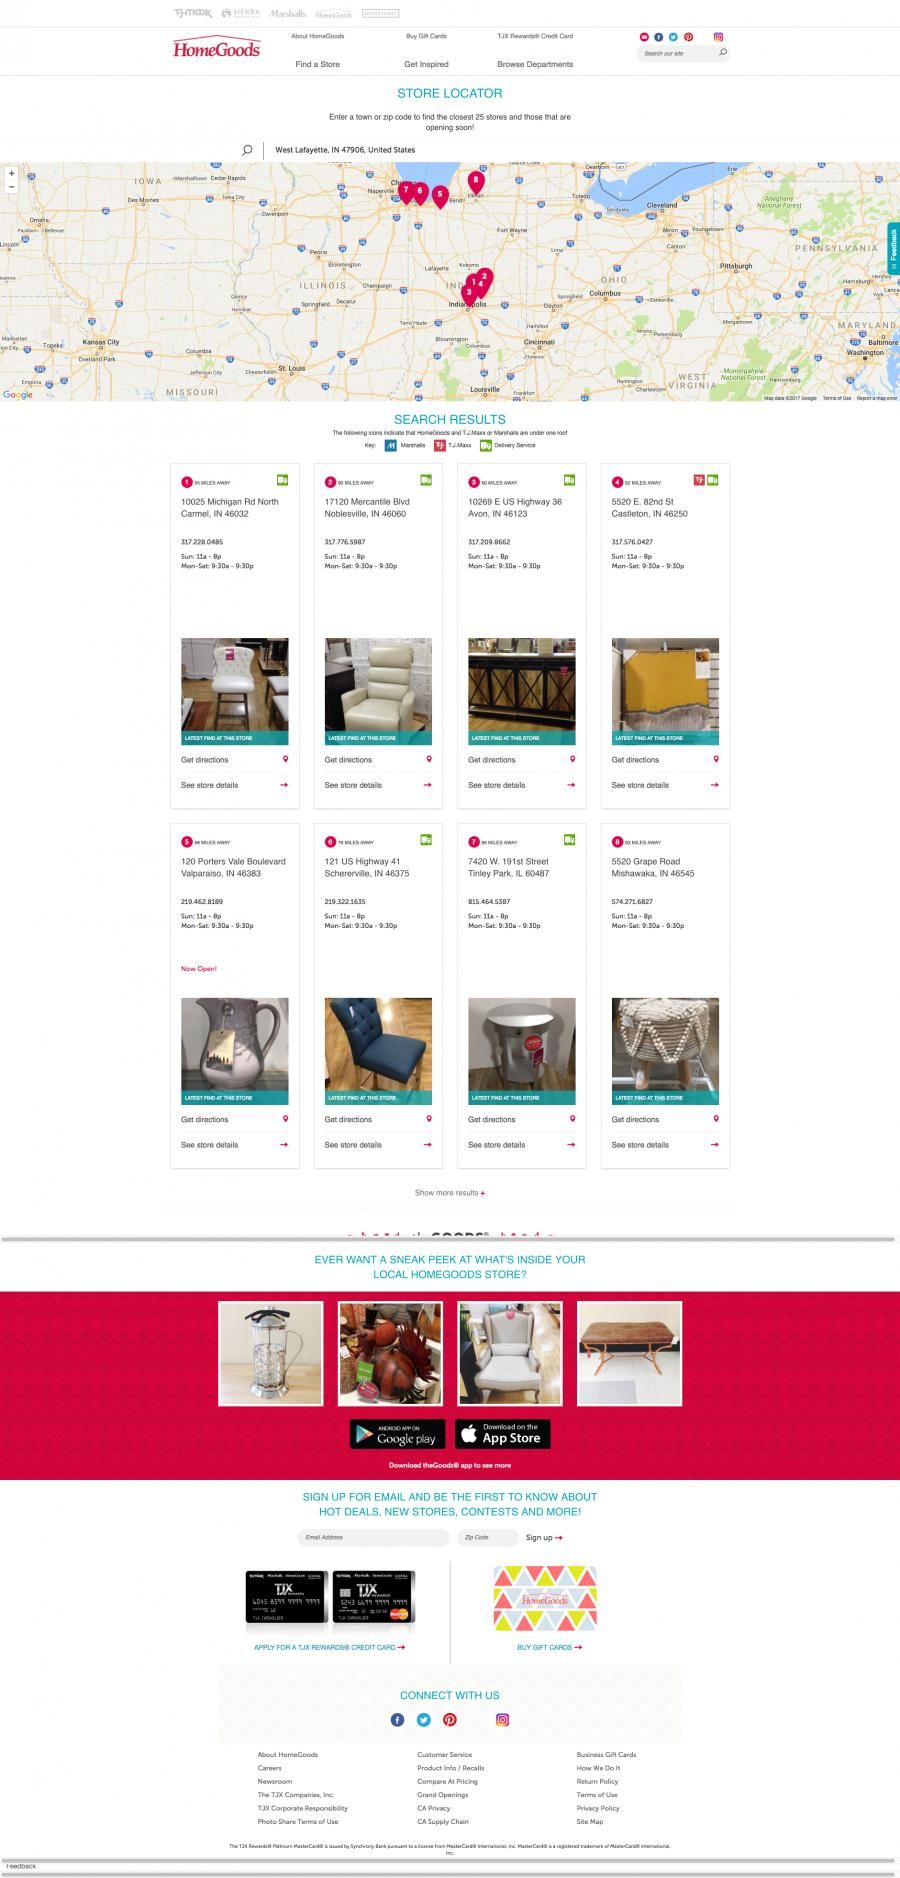 Home Goods Store Locations Map Design In 2020 Home Goods Store Location Map Map Design